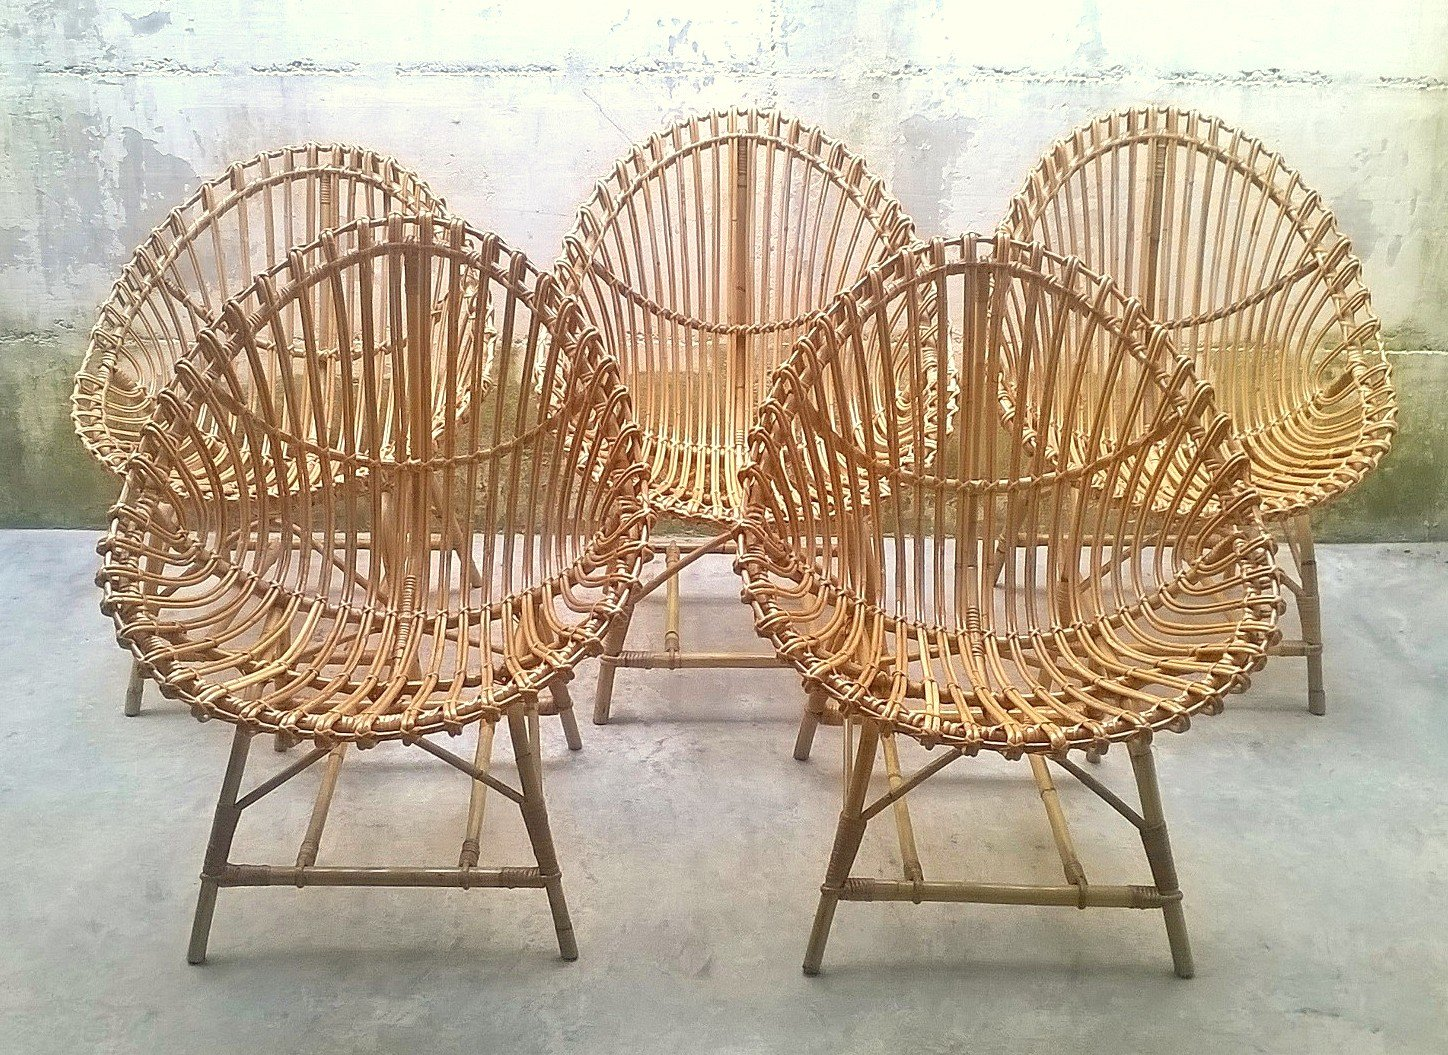 Rattan Egg Chairs Italian Rattan Egg Shaped Chairs 1950s Set Of 5 For Sale